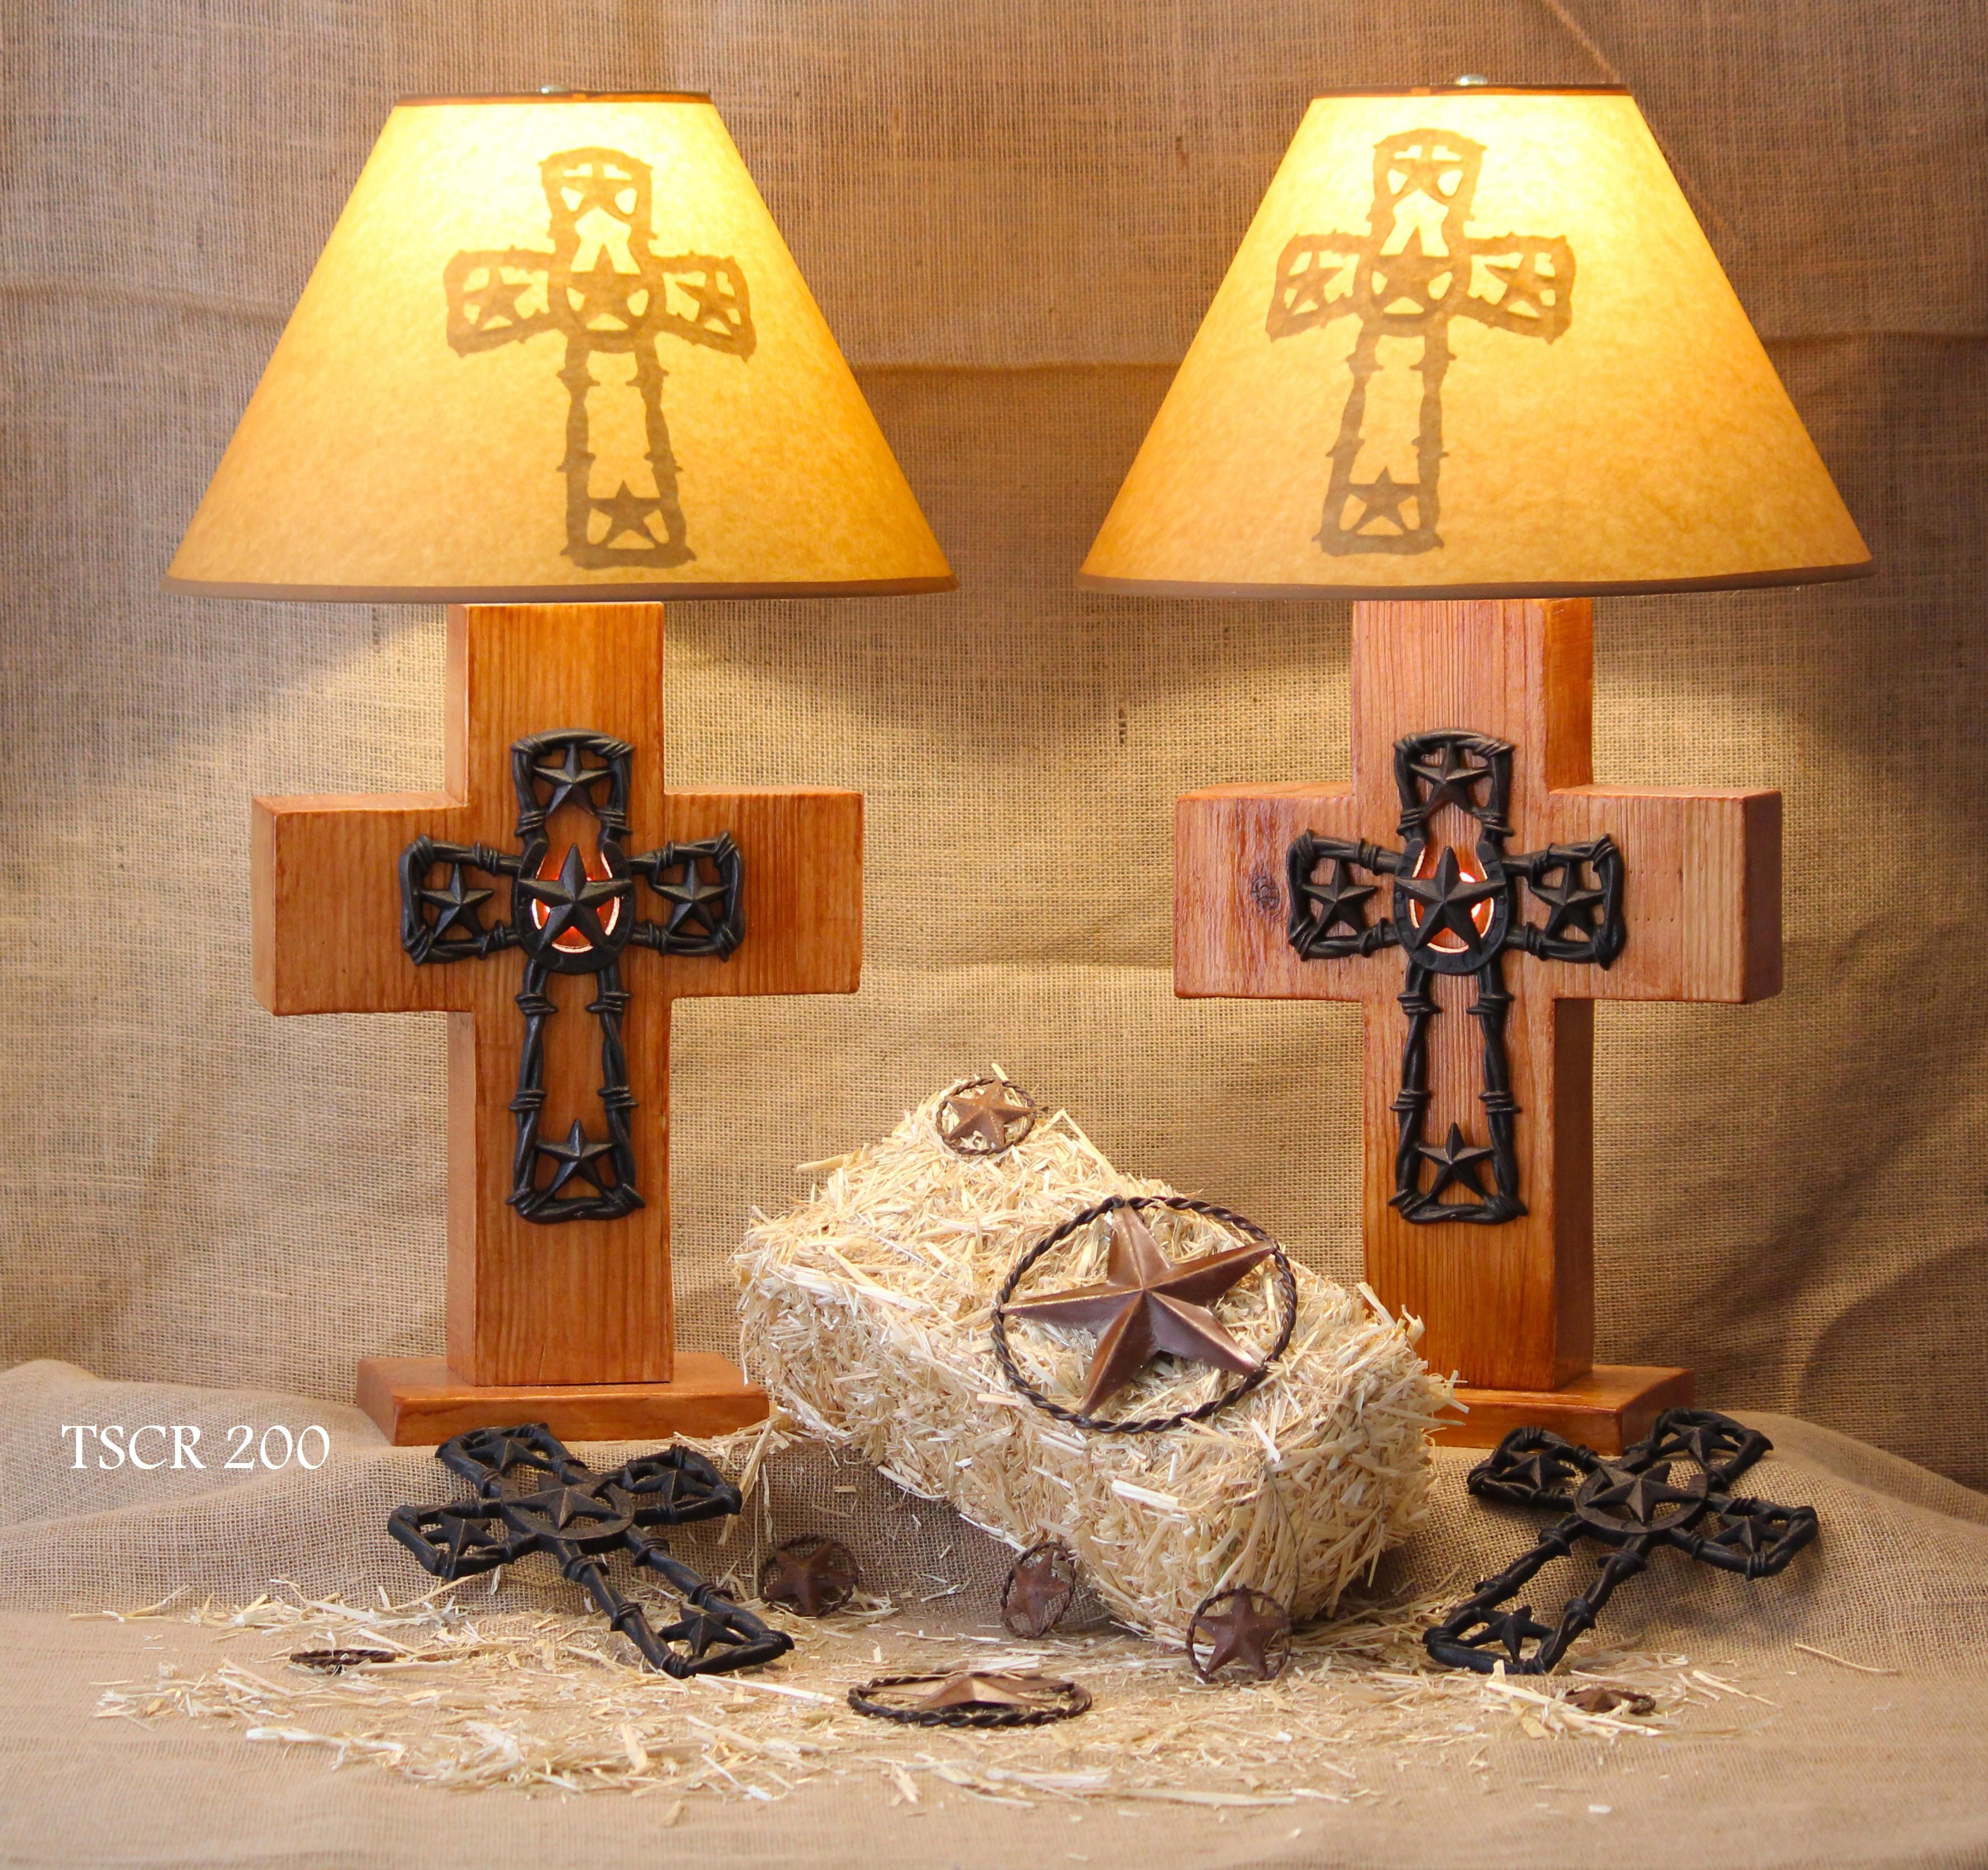 Texas Star Cross Lamp Has a 3 way switch to give you the option